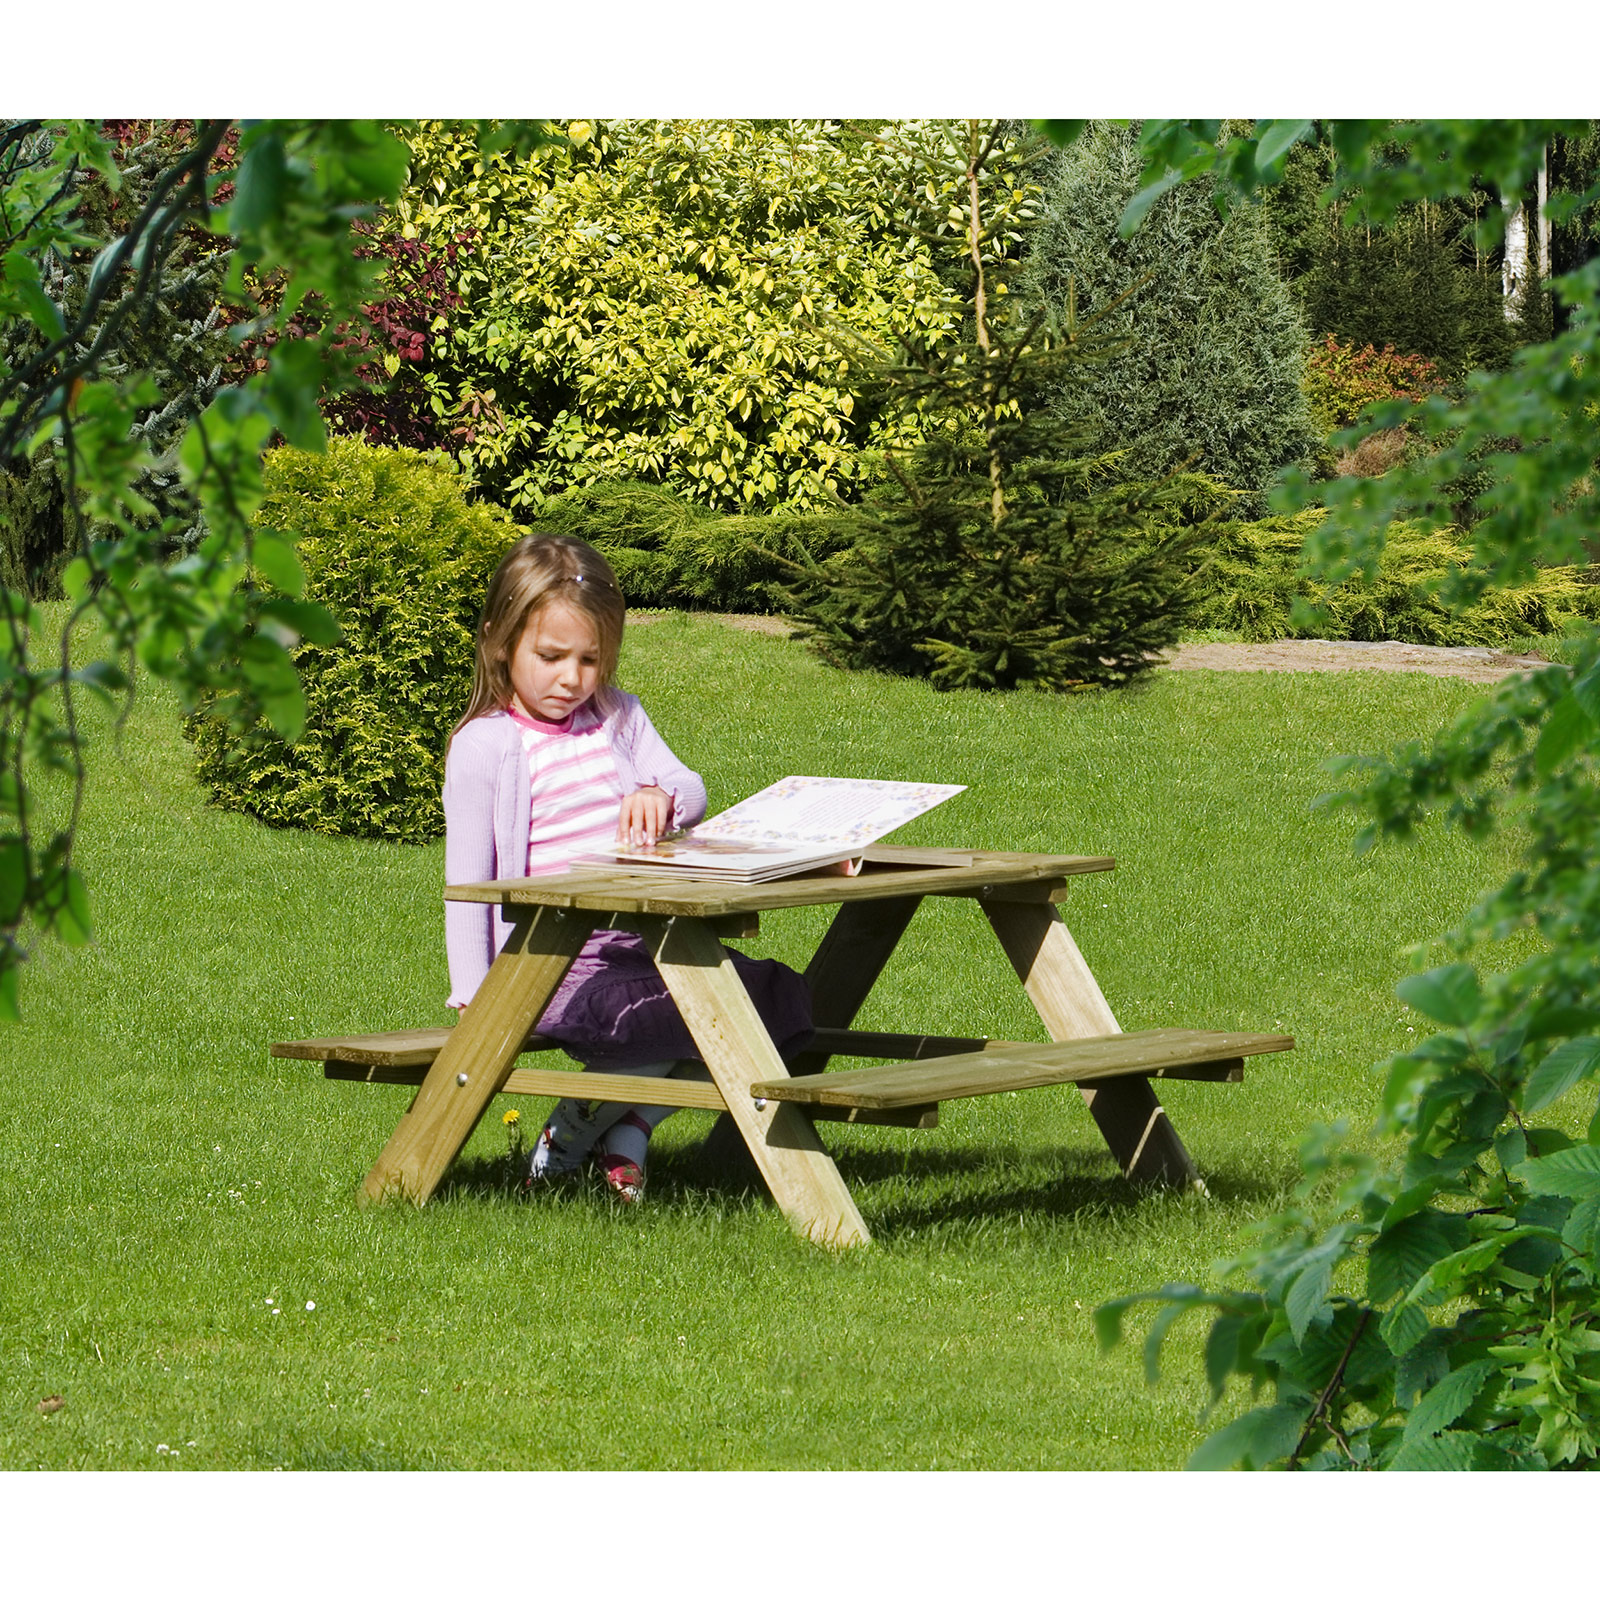 kinderpicknicktisch bank kinder gartenm bel aus holz von gartenpirat de ebay. Black Bedroom Furniture Sets. Home Design Ideas